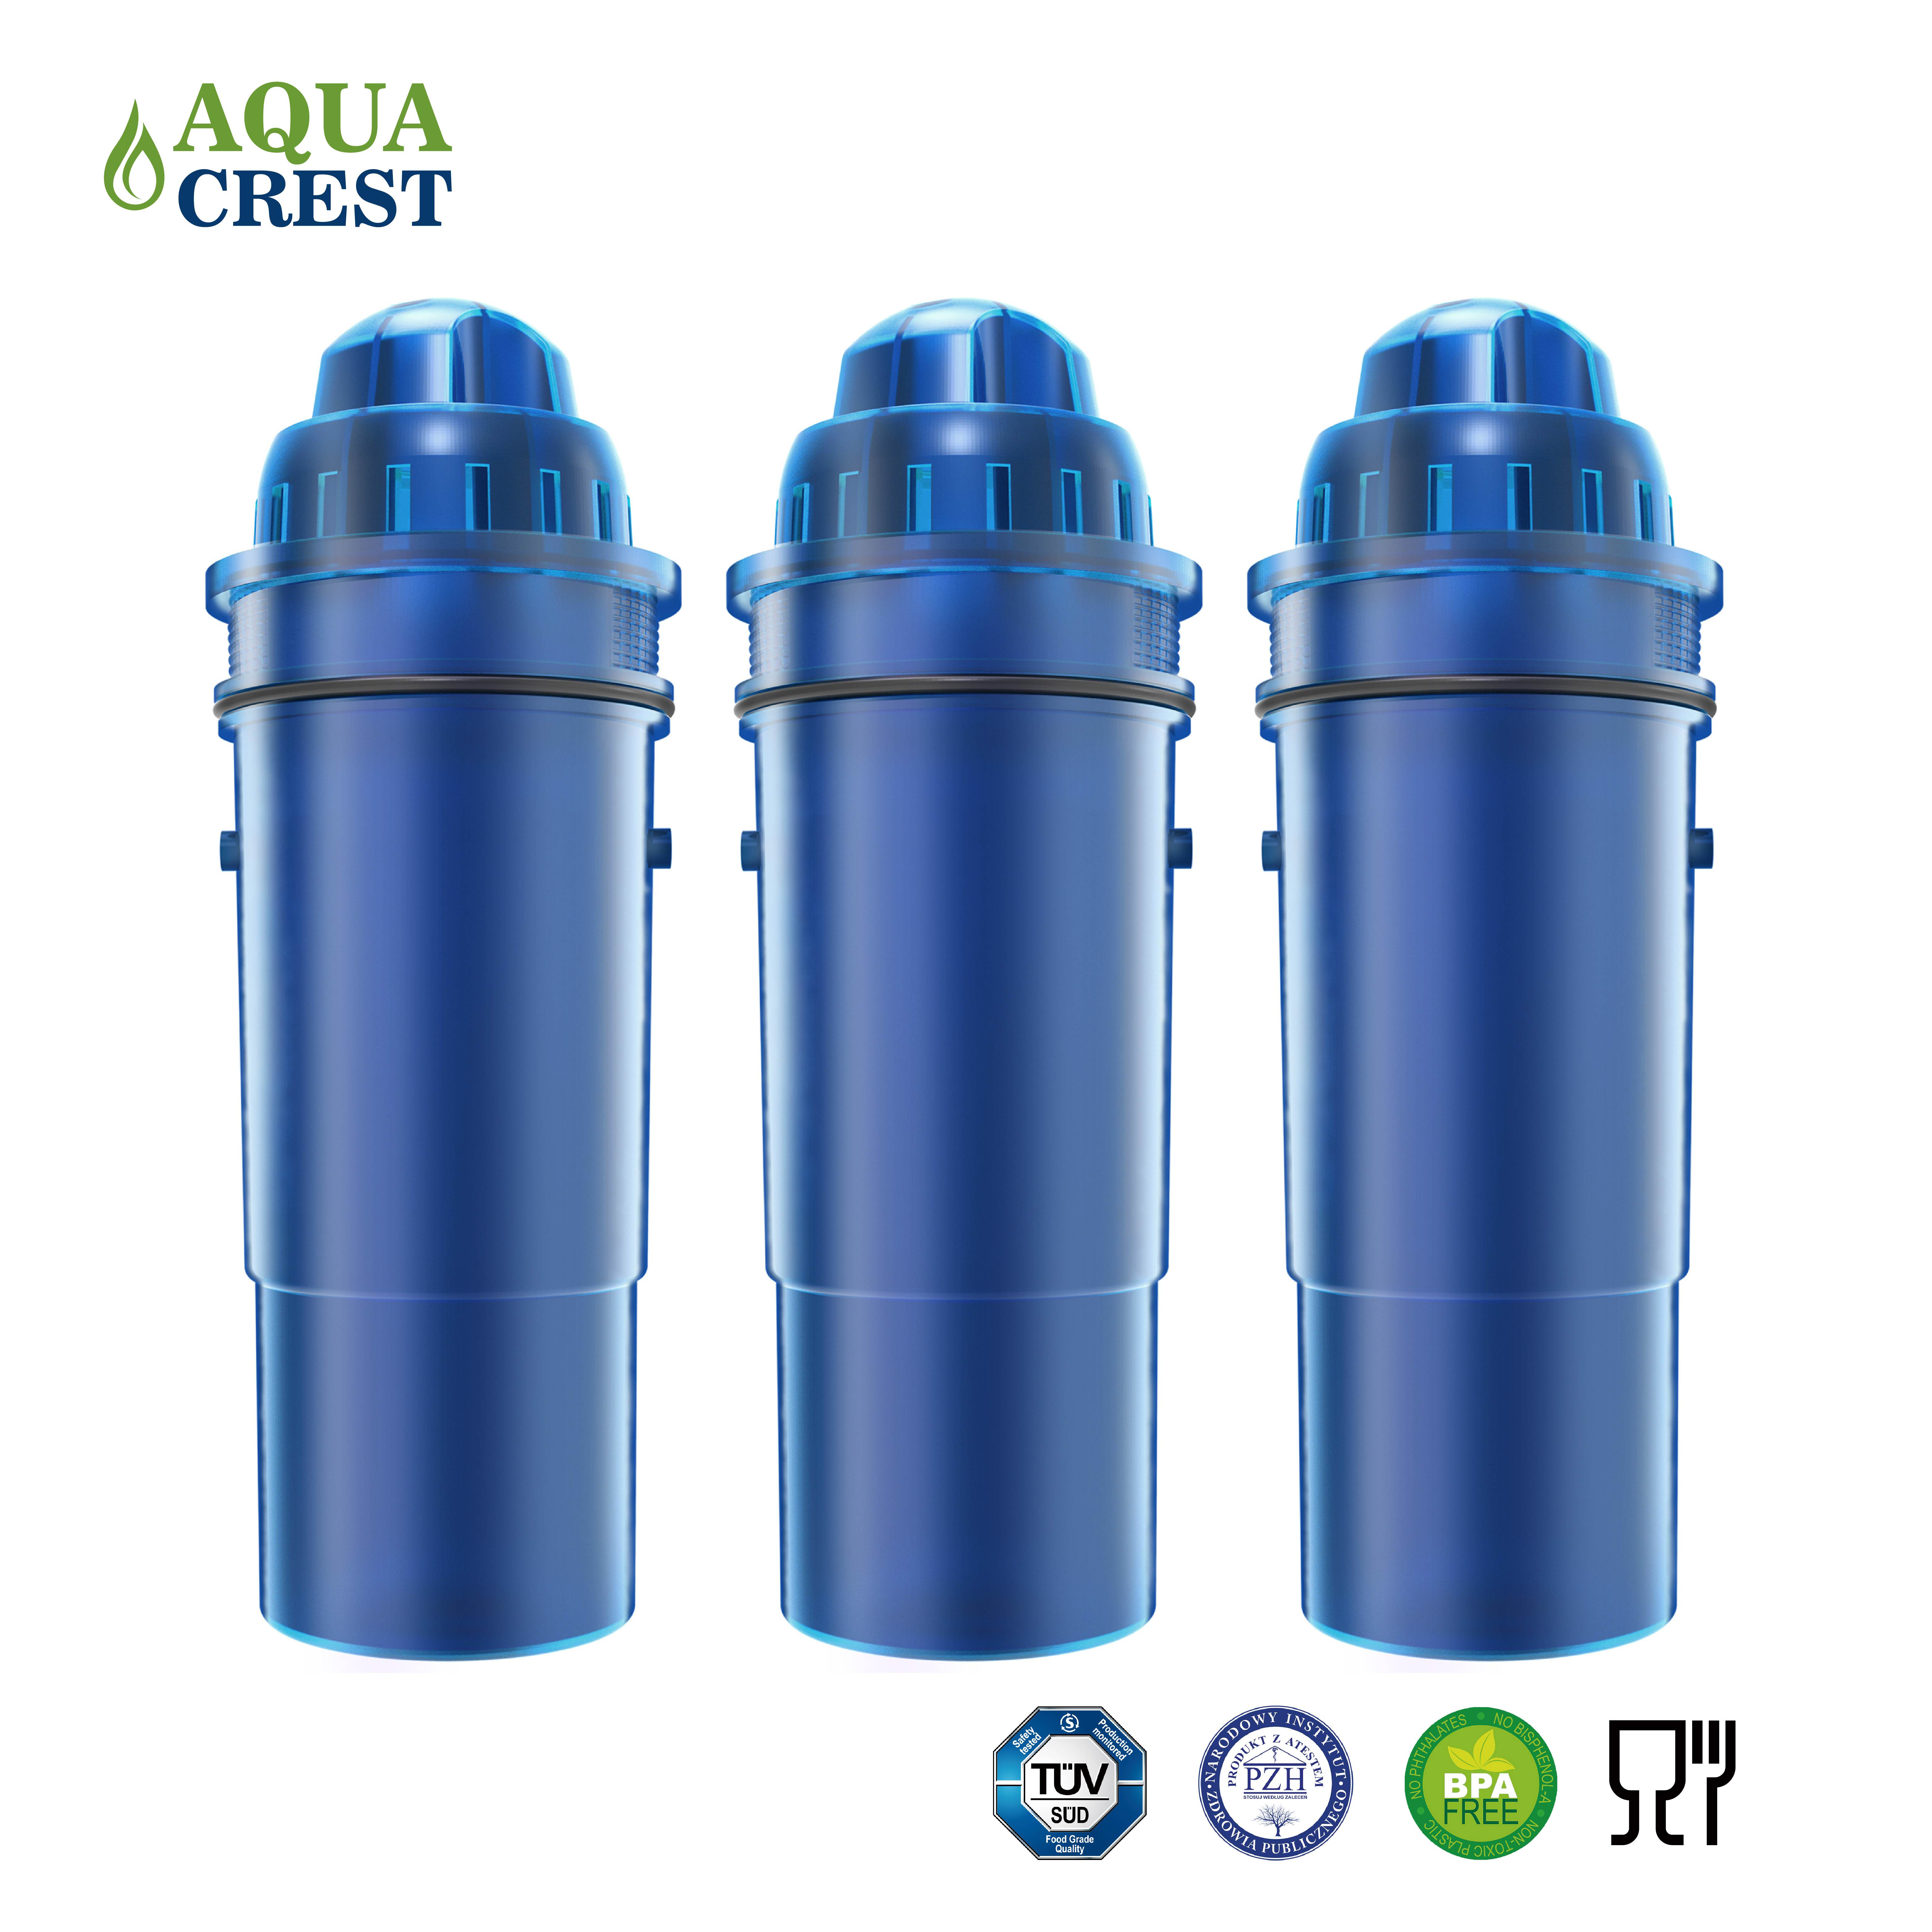 3 Pack AQUACREST Filter Refills for Pur CRF-950Z Pitcher Water Filter by Ecolife Technologies